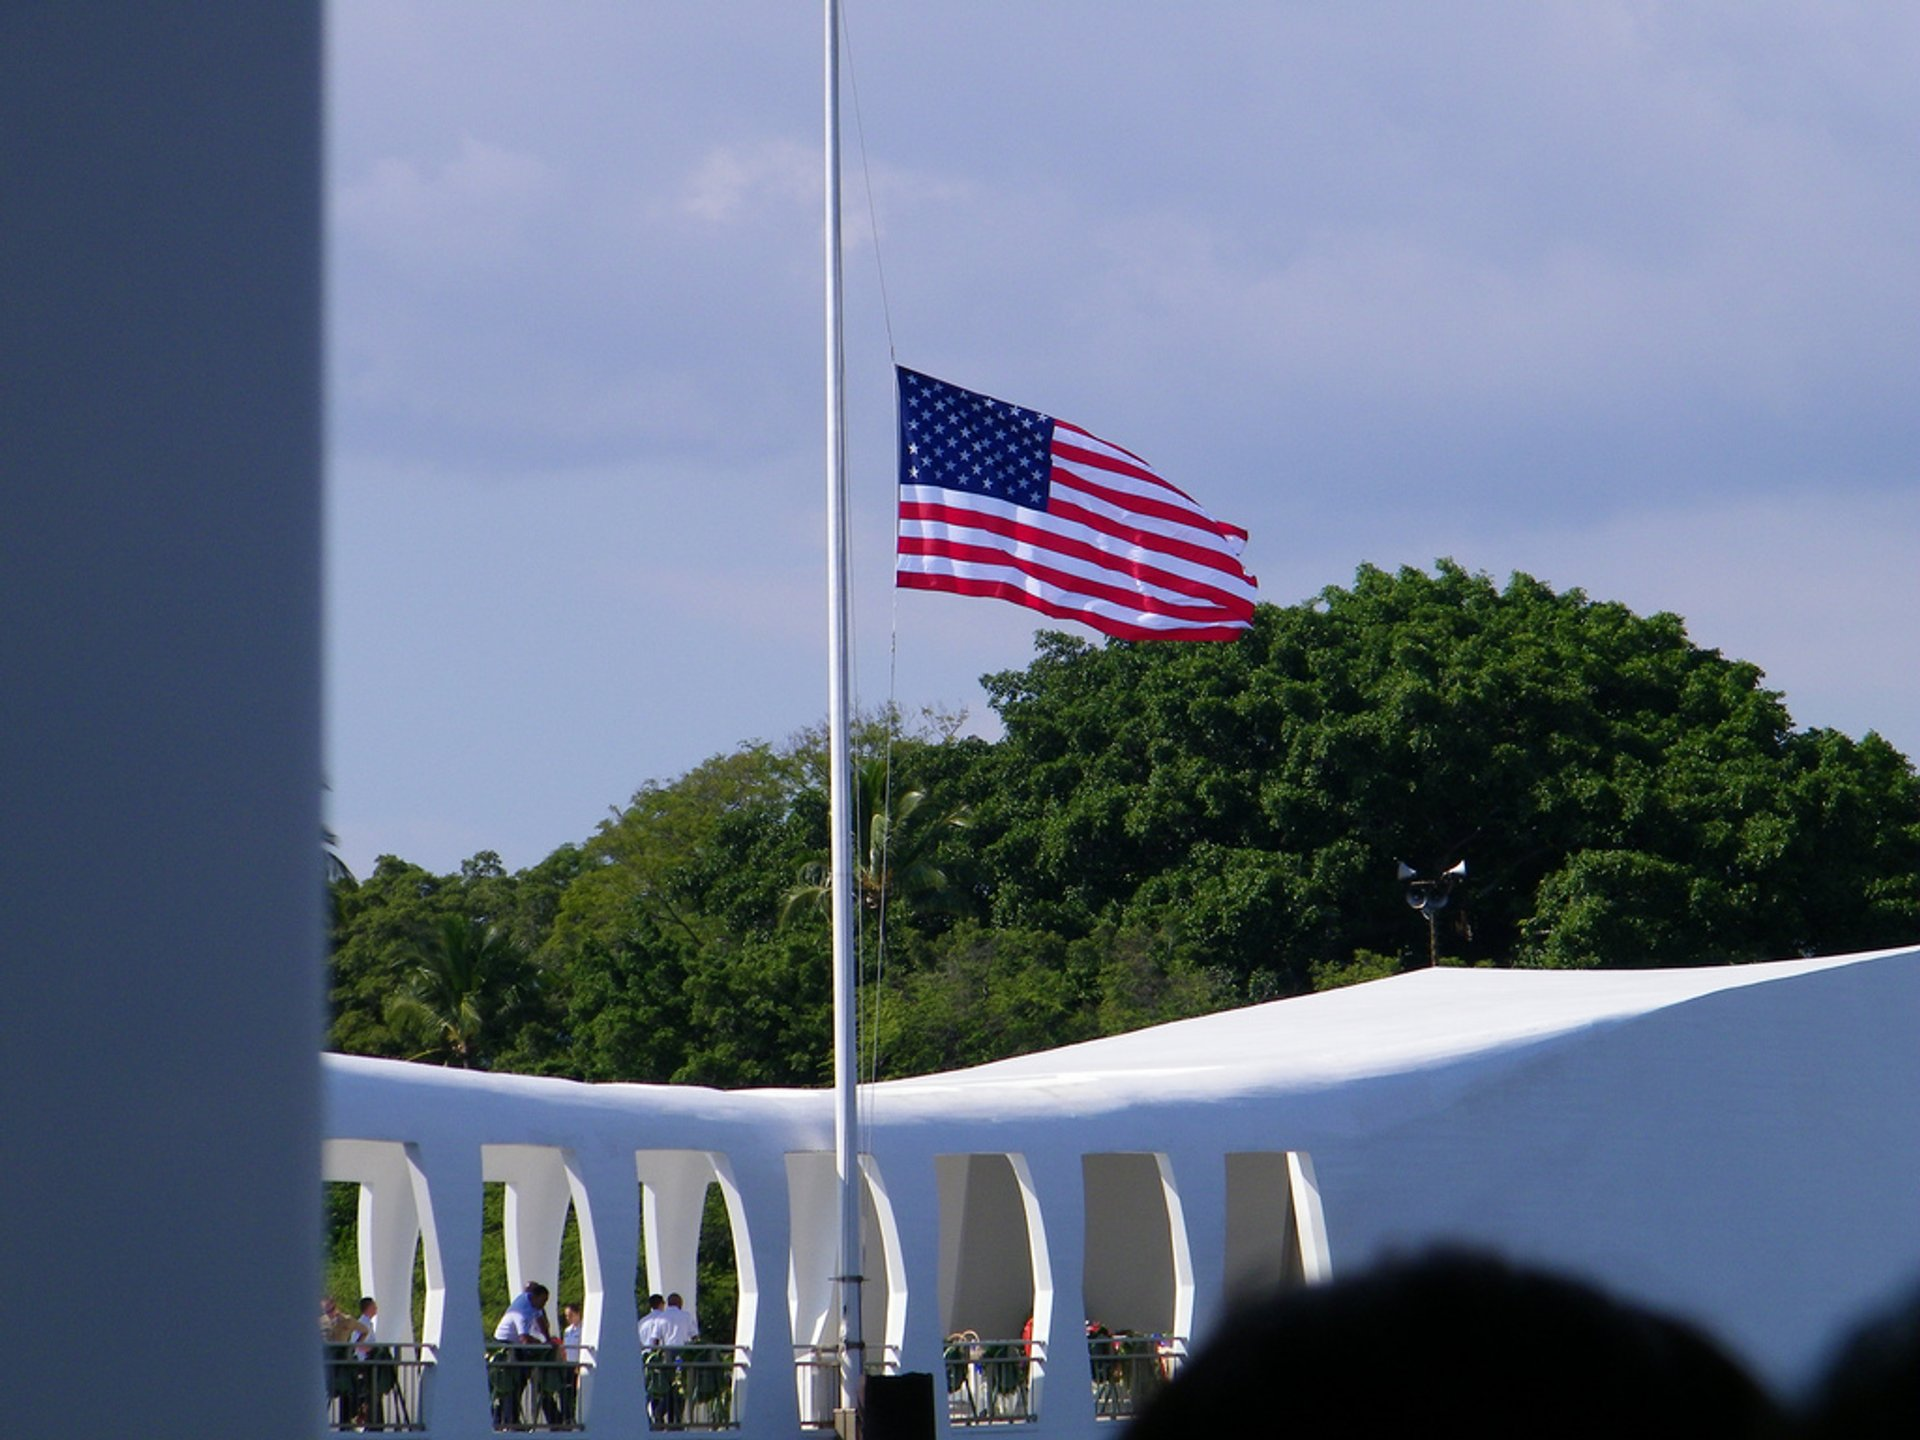 Pearl Harbor Day in Hawaii 2019 - Best Time